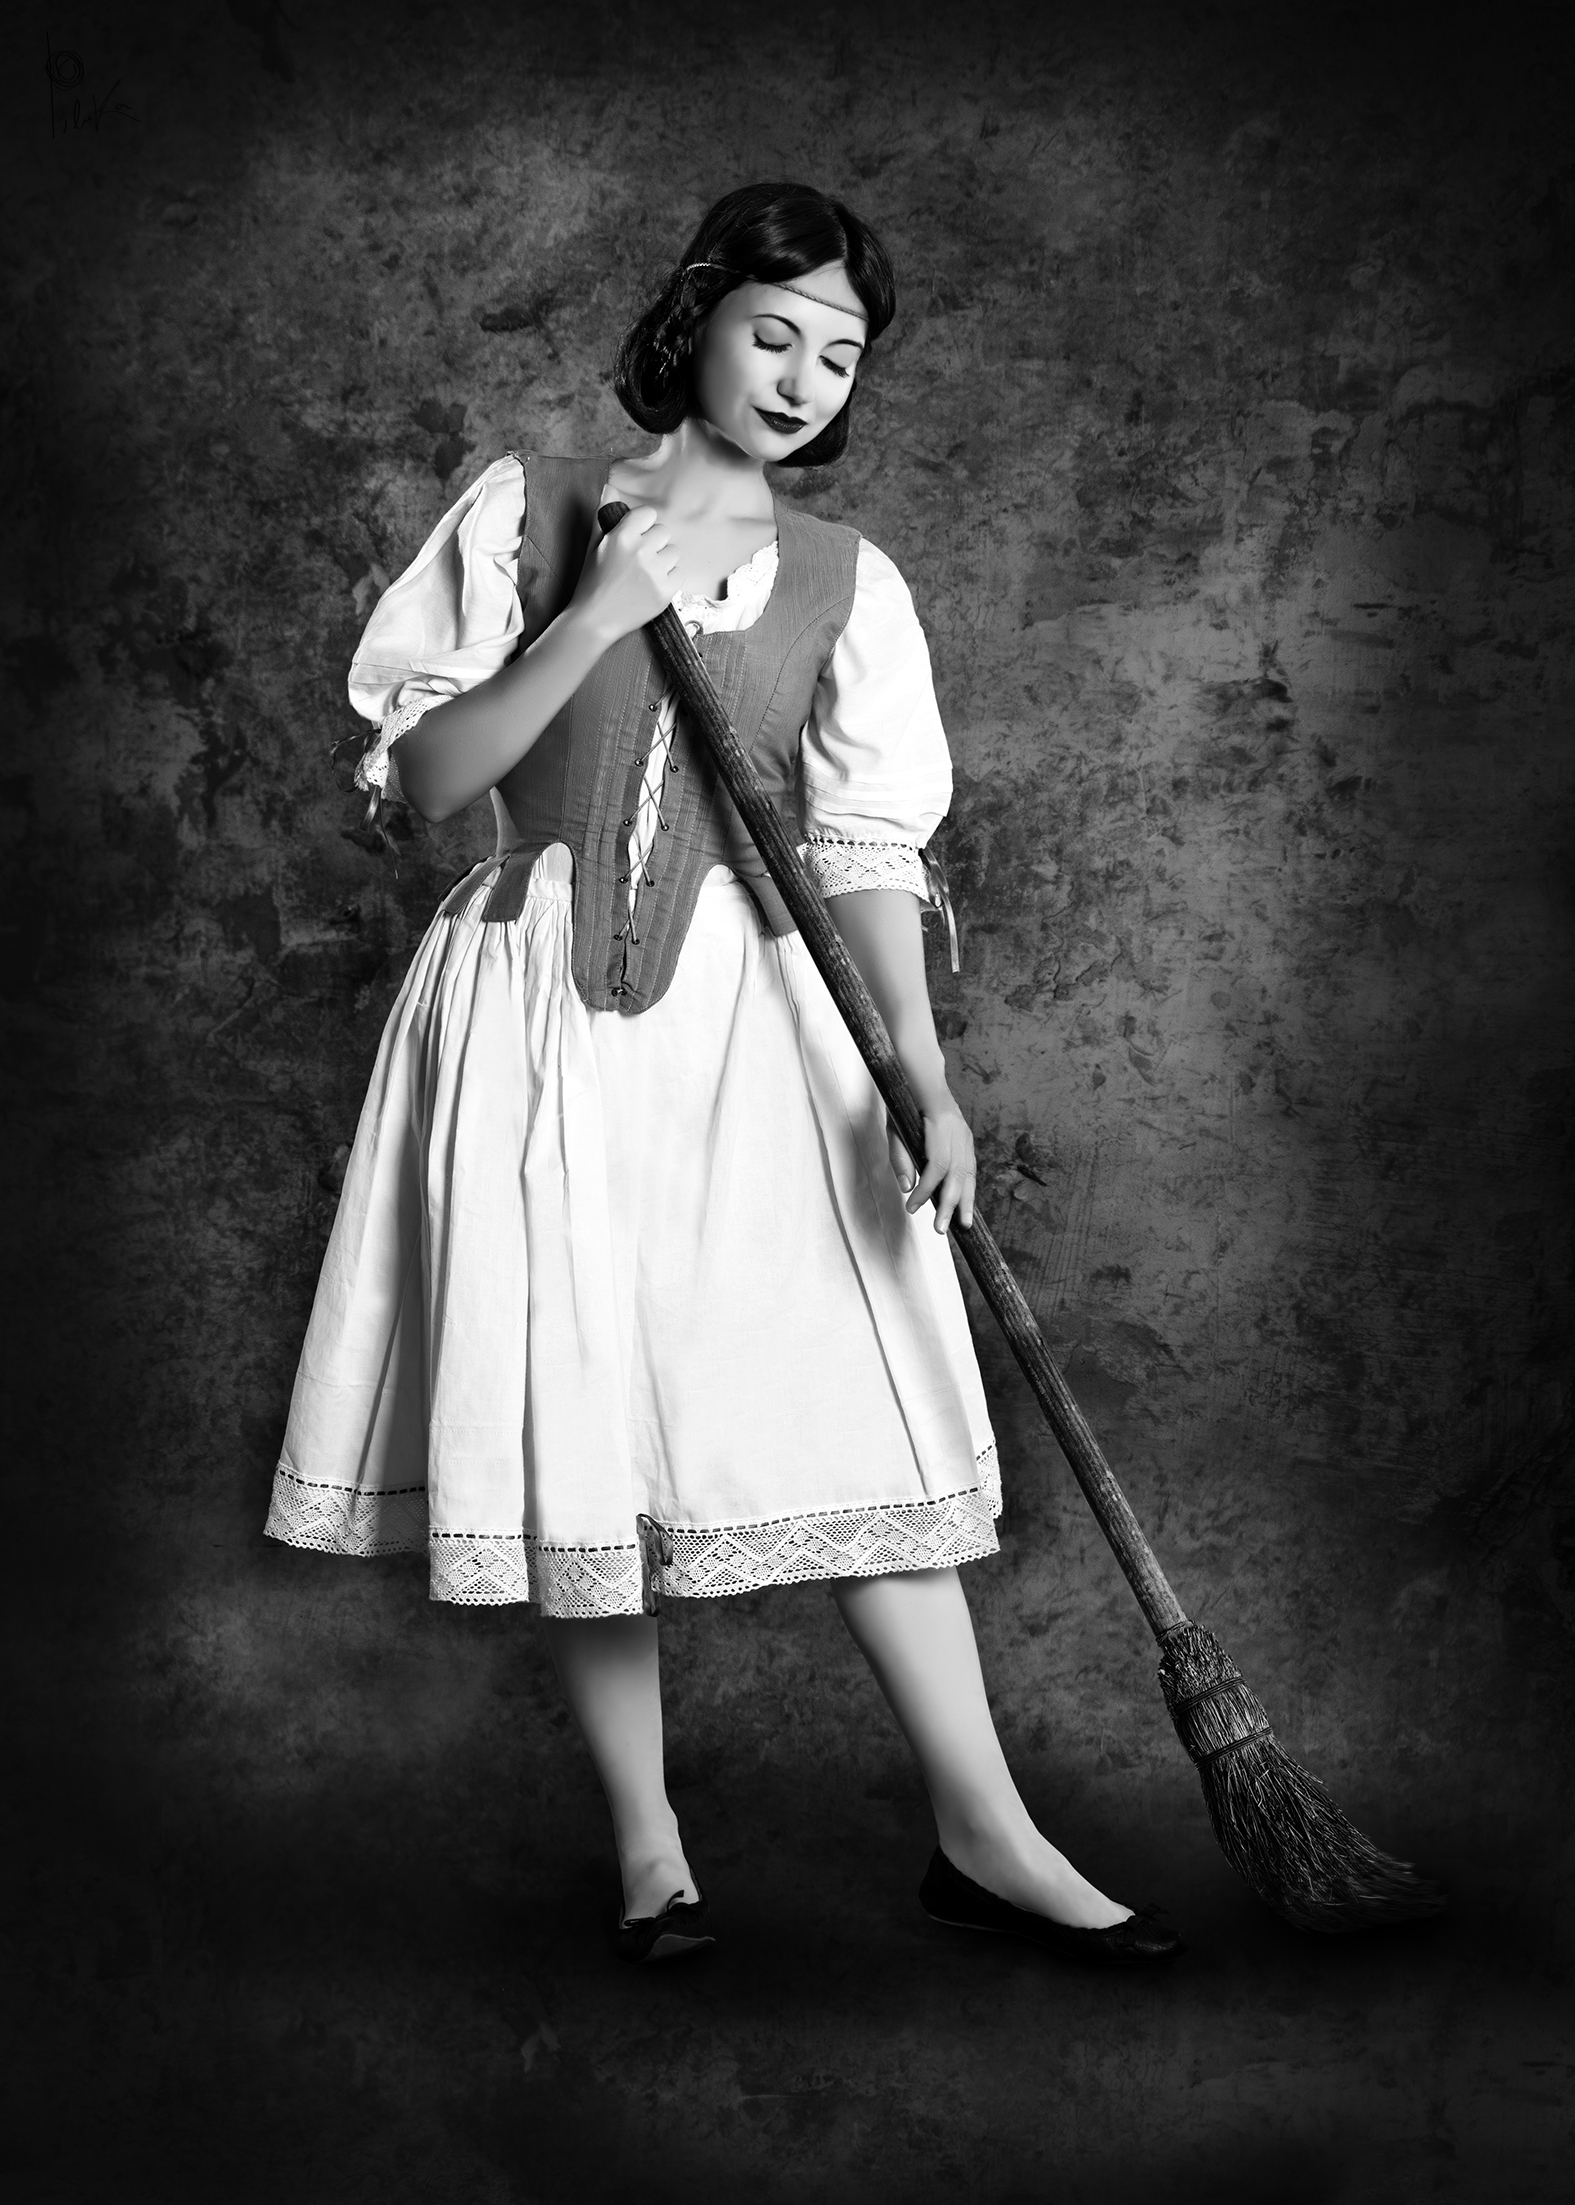 Blancanieves, Piluka Photographer